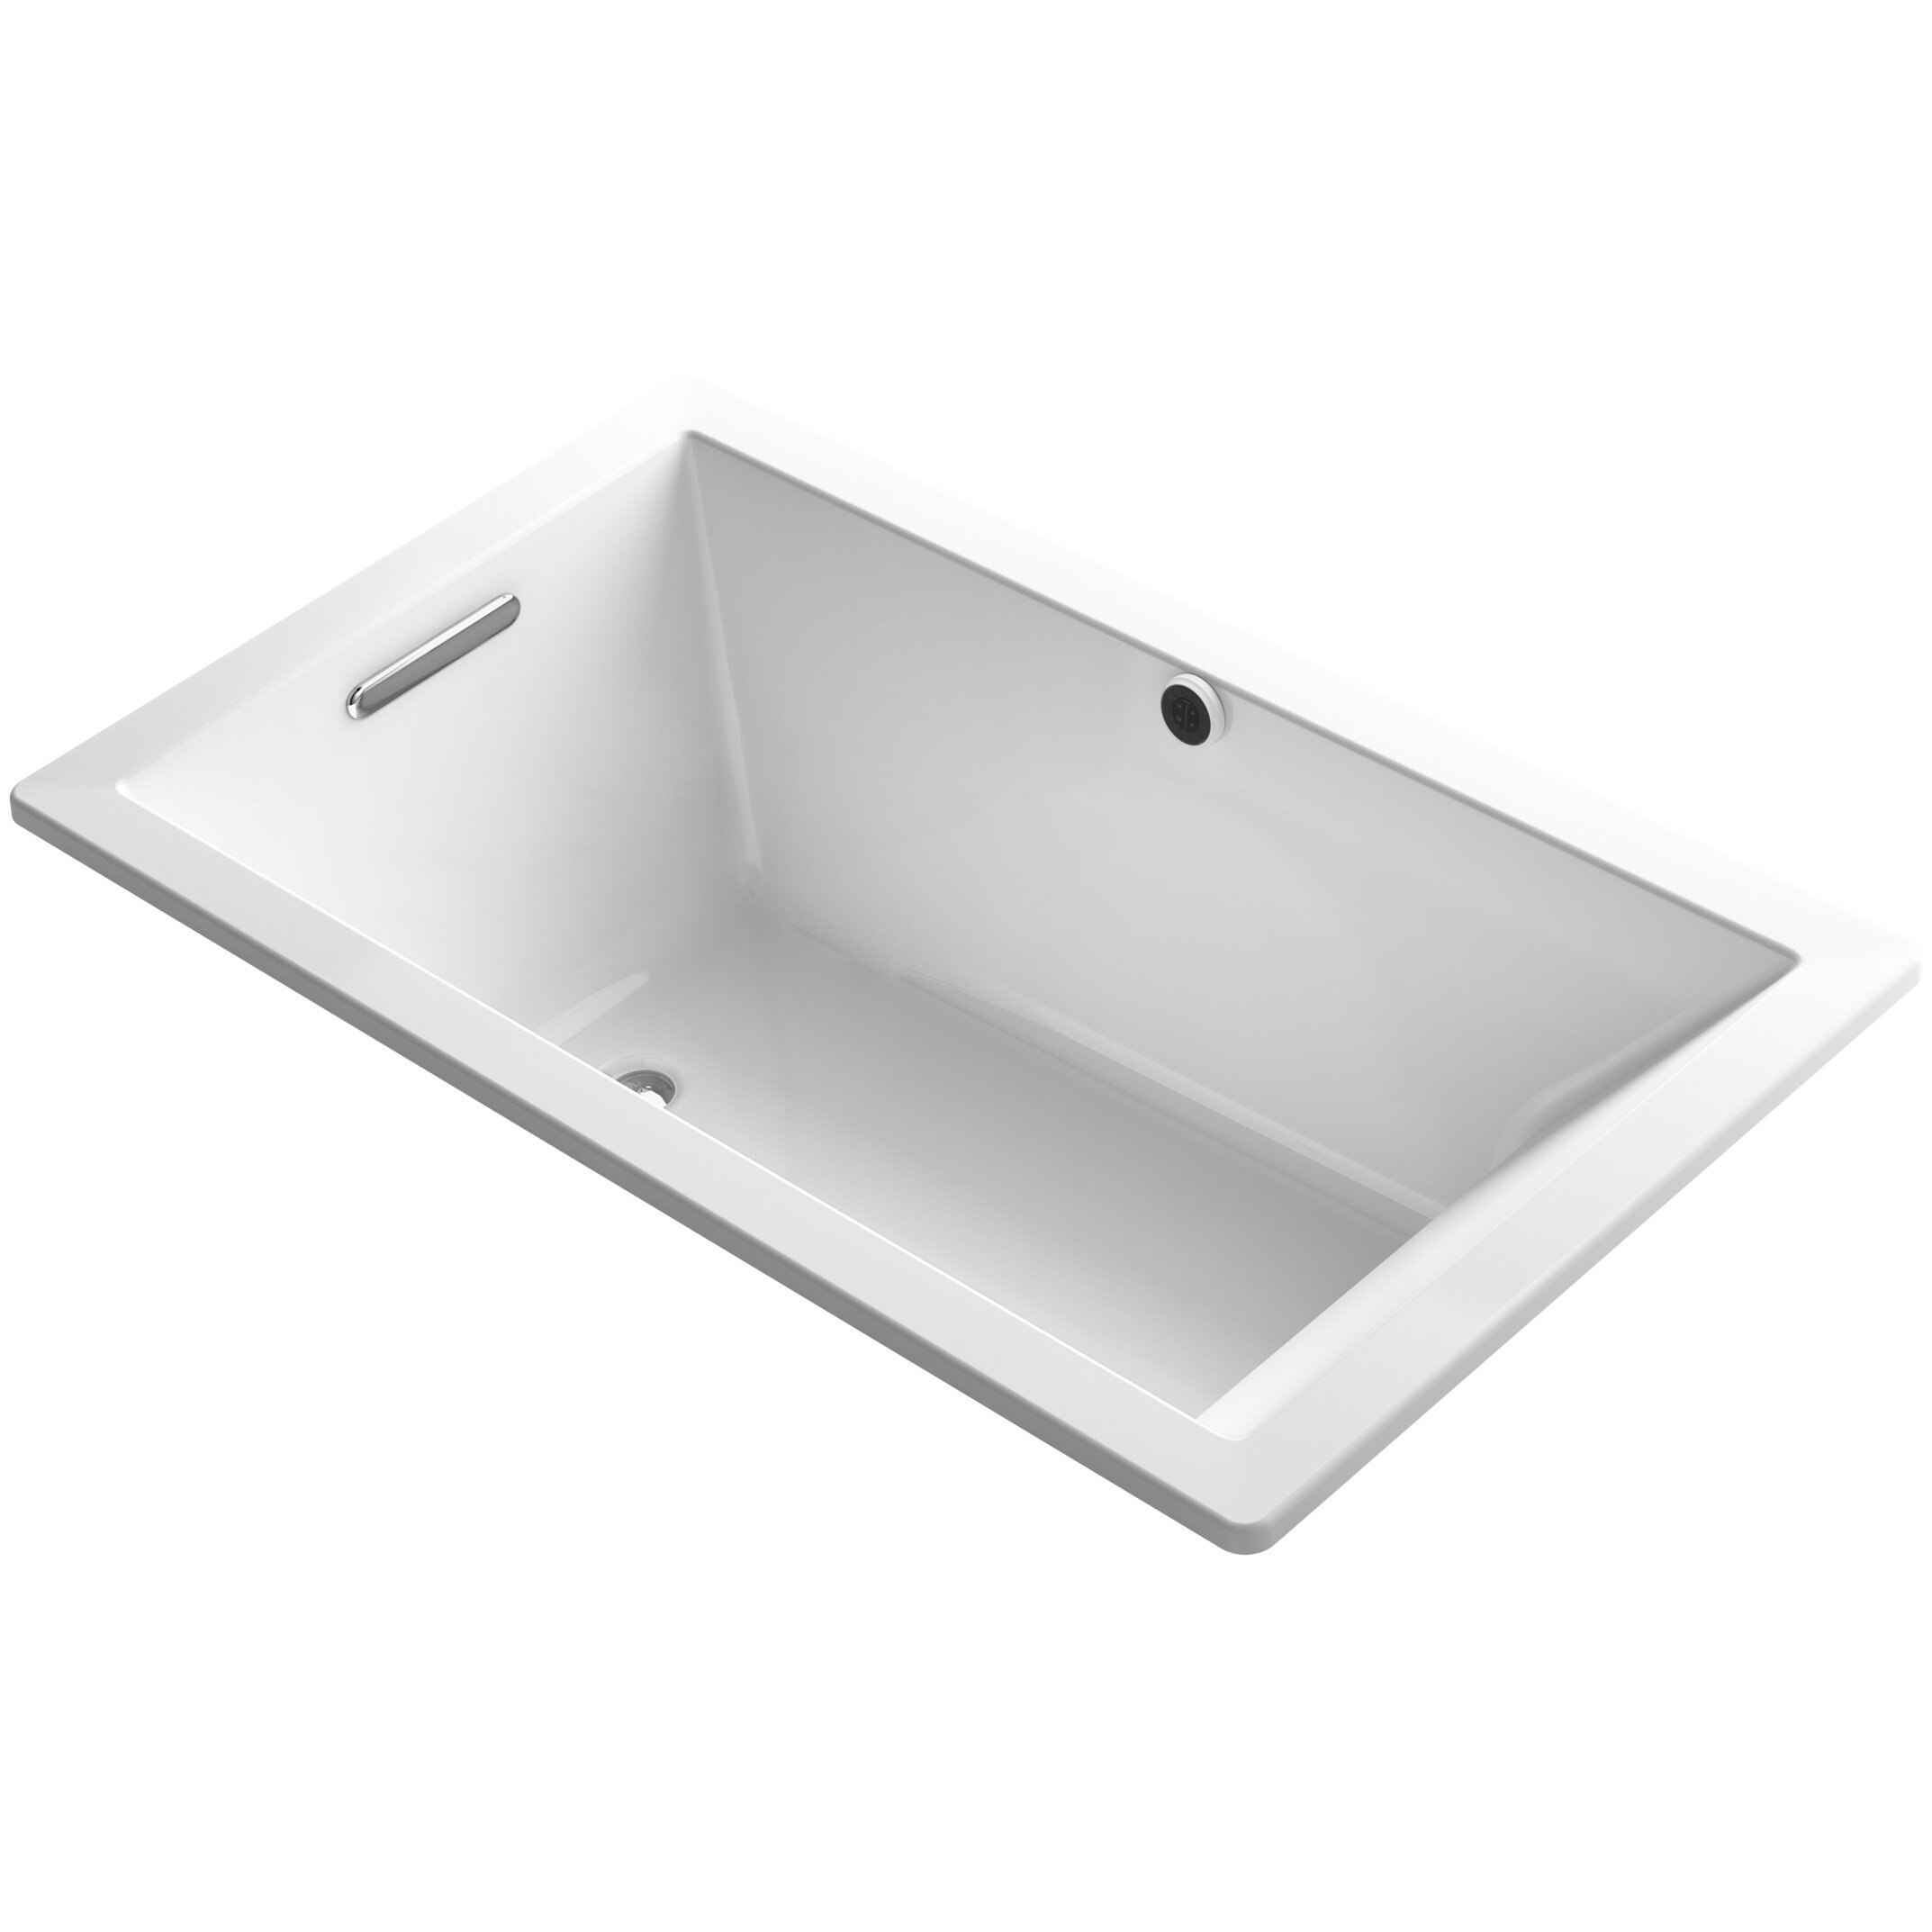 "Kohler Underscore 60"" x 36"" Soaking Bathtub 